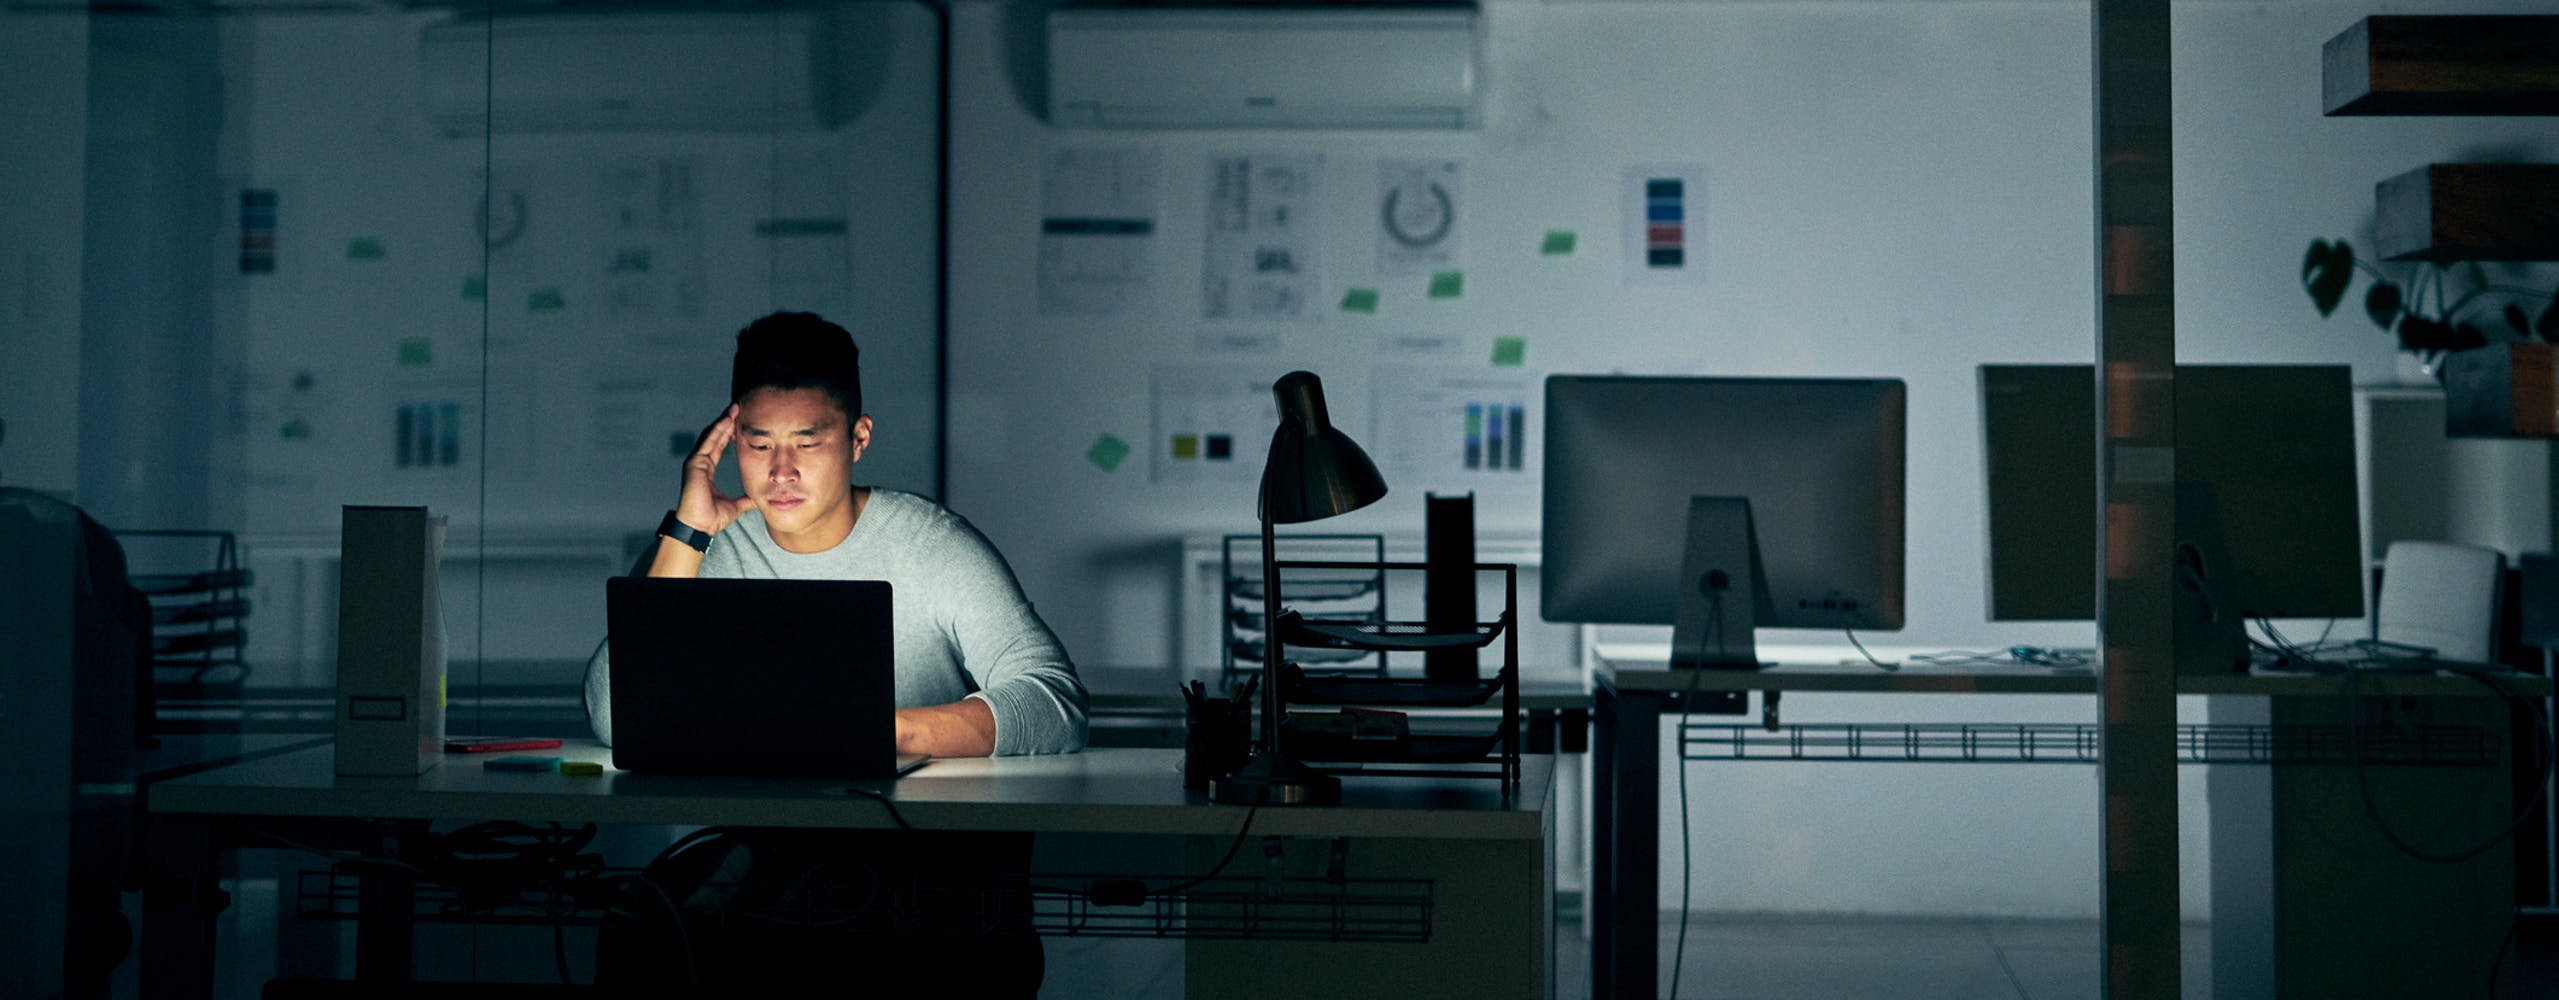 Image of working late.